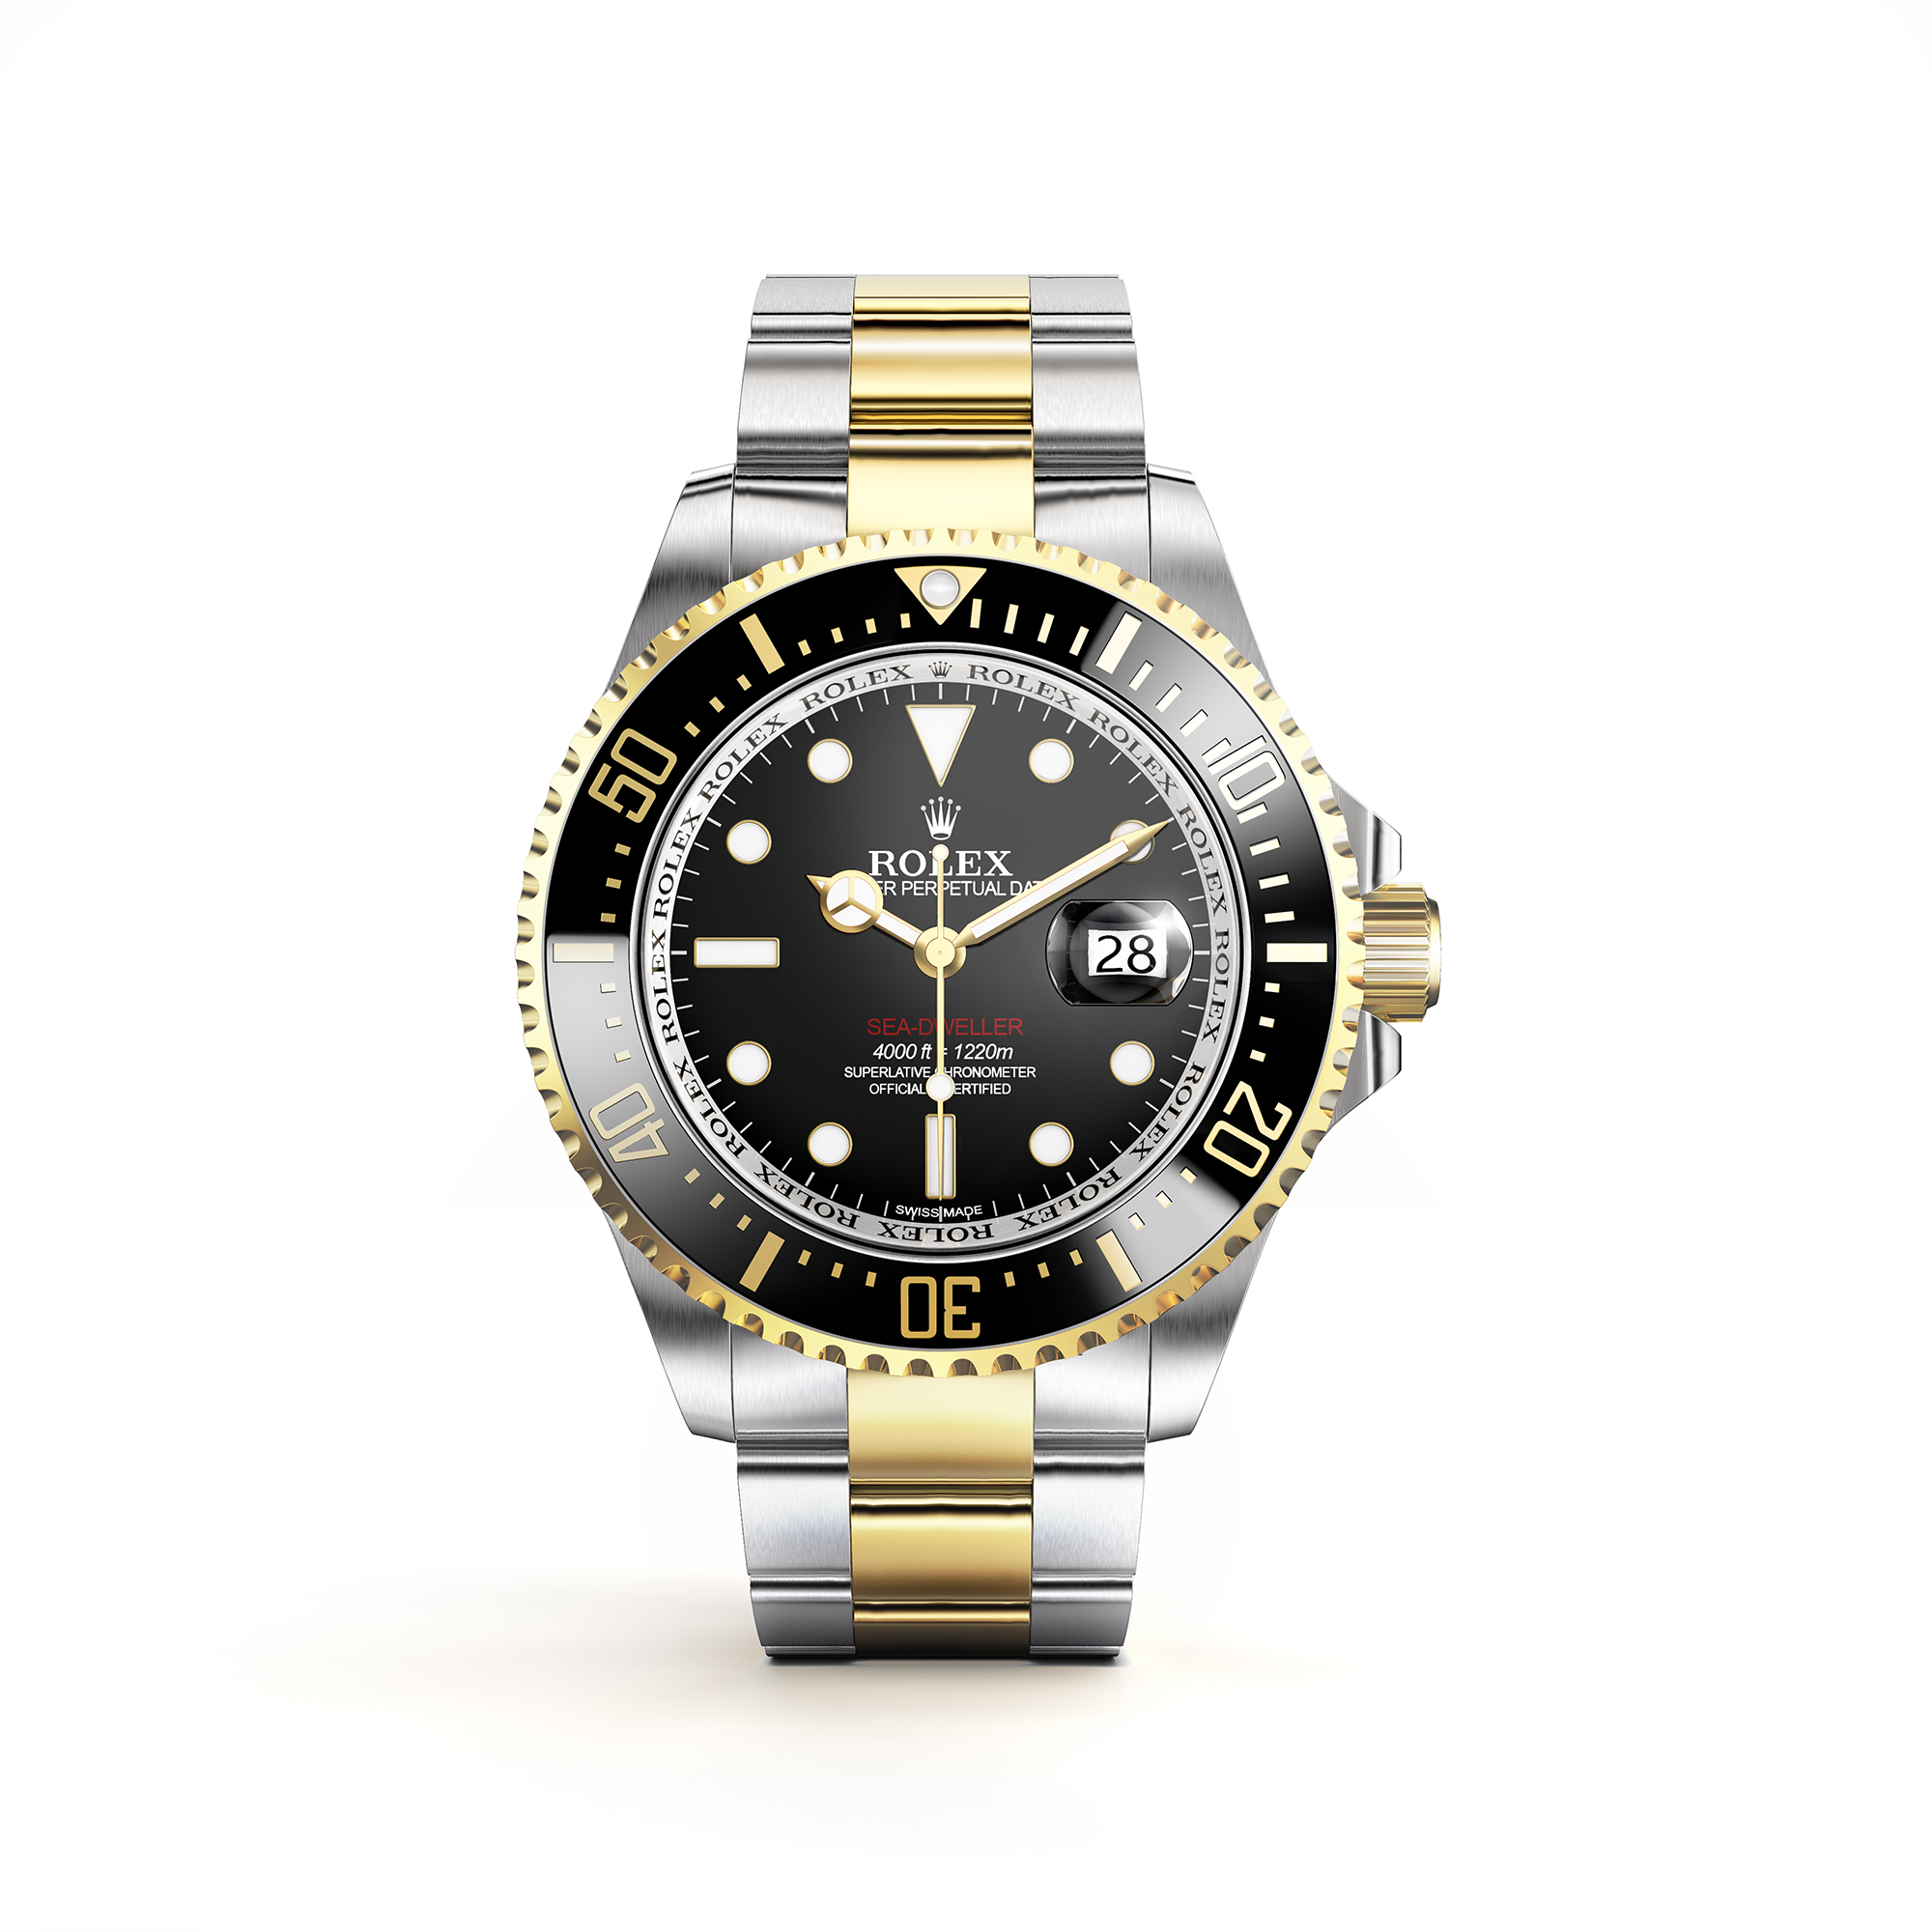 Jewellery Rendering Rolex Gold